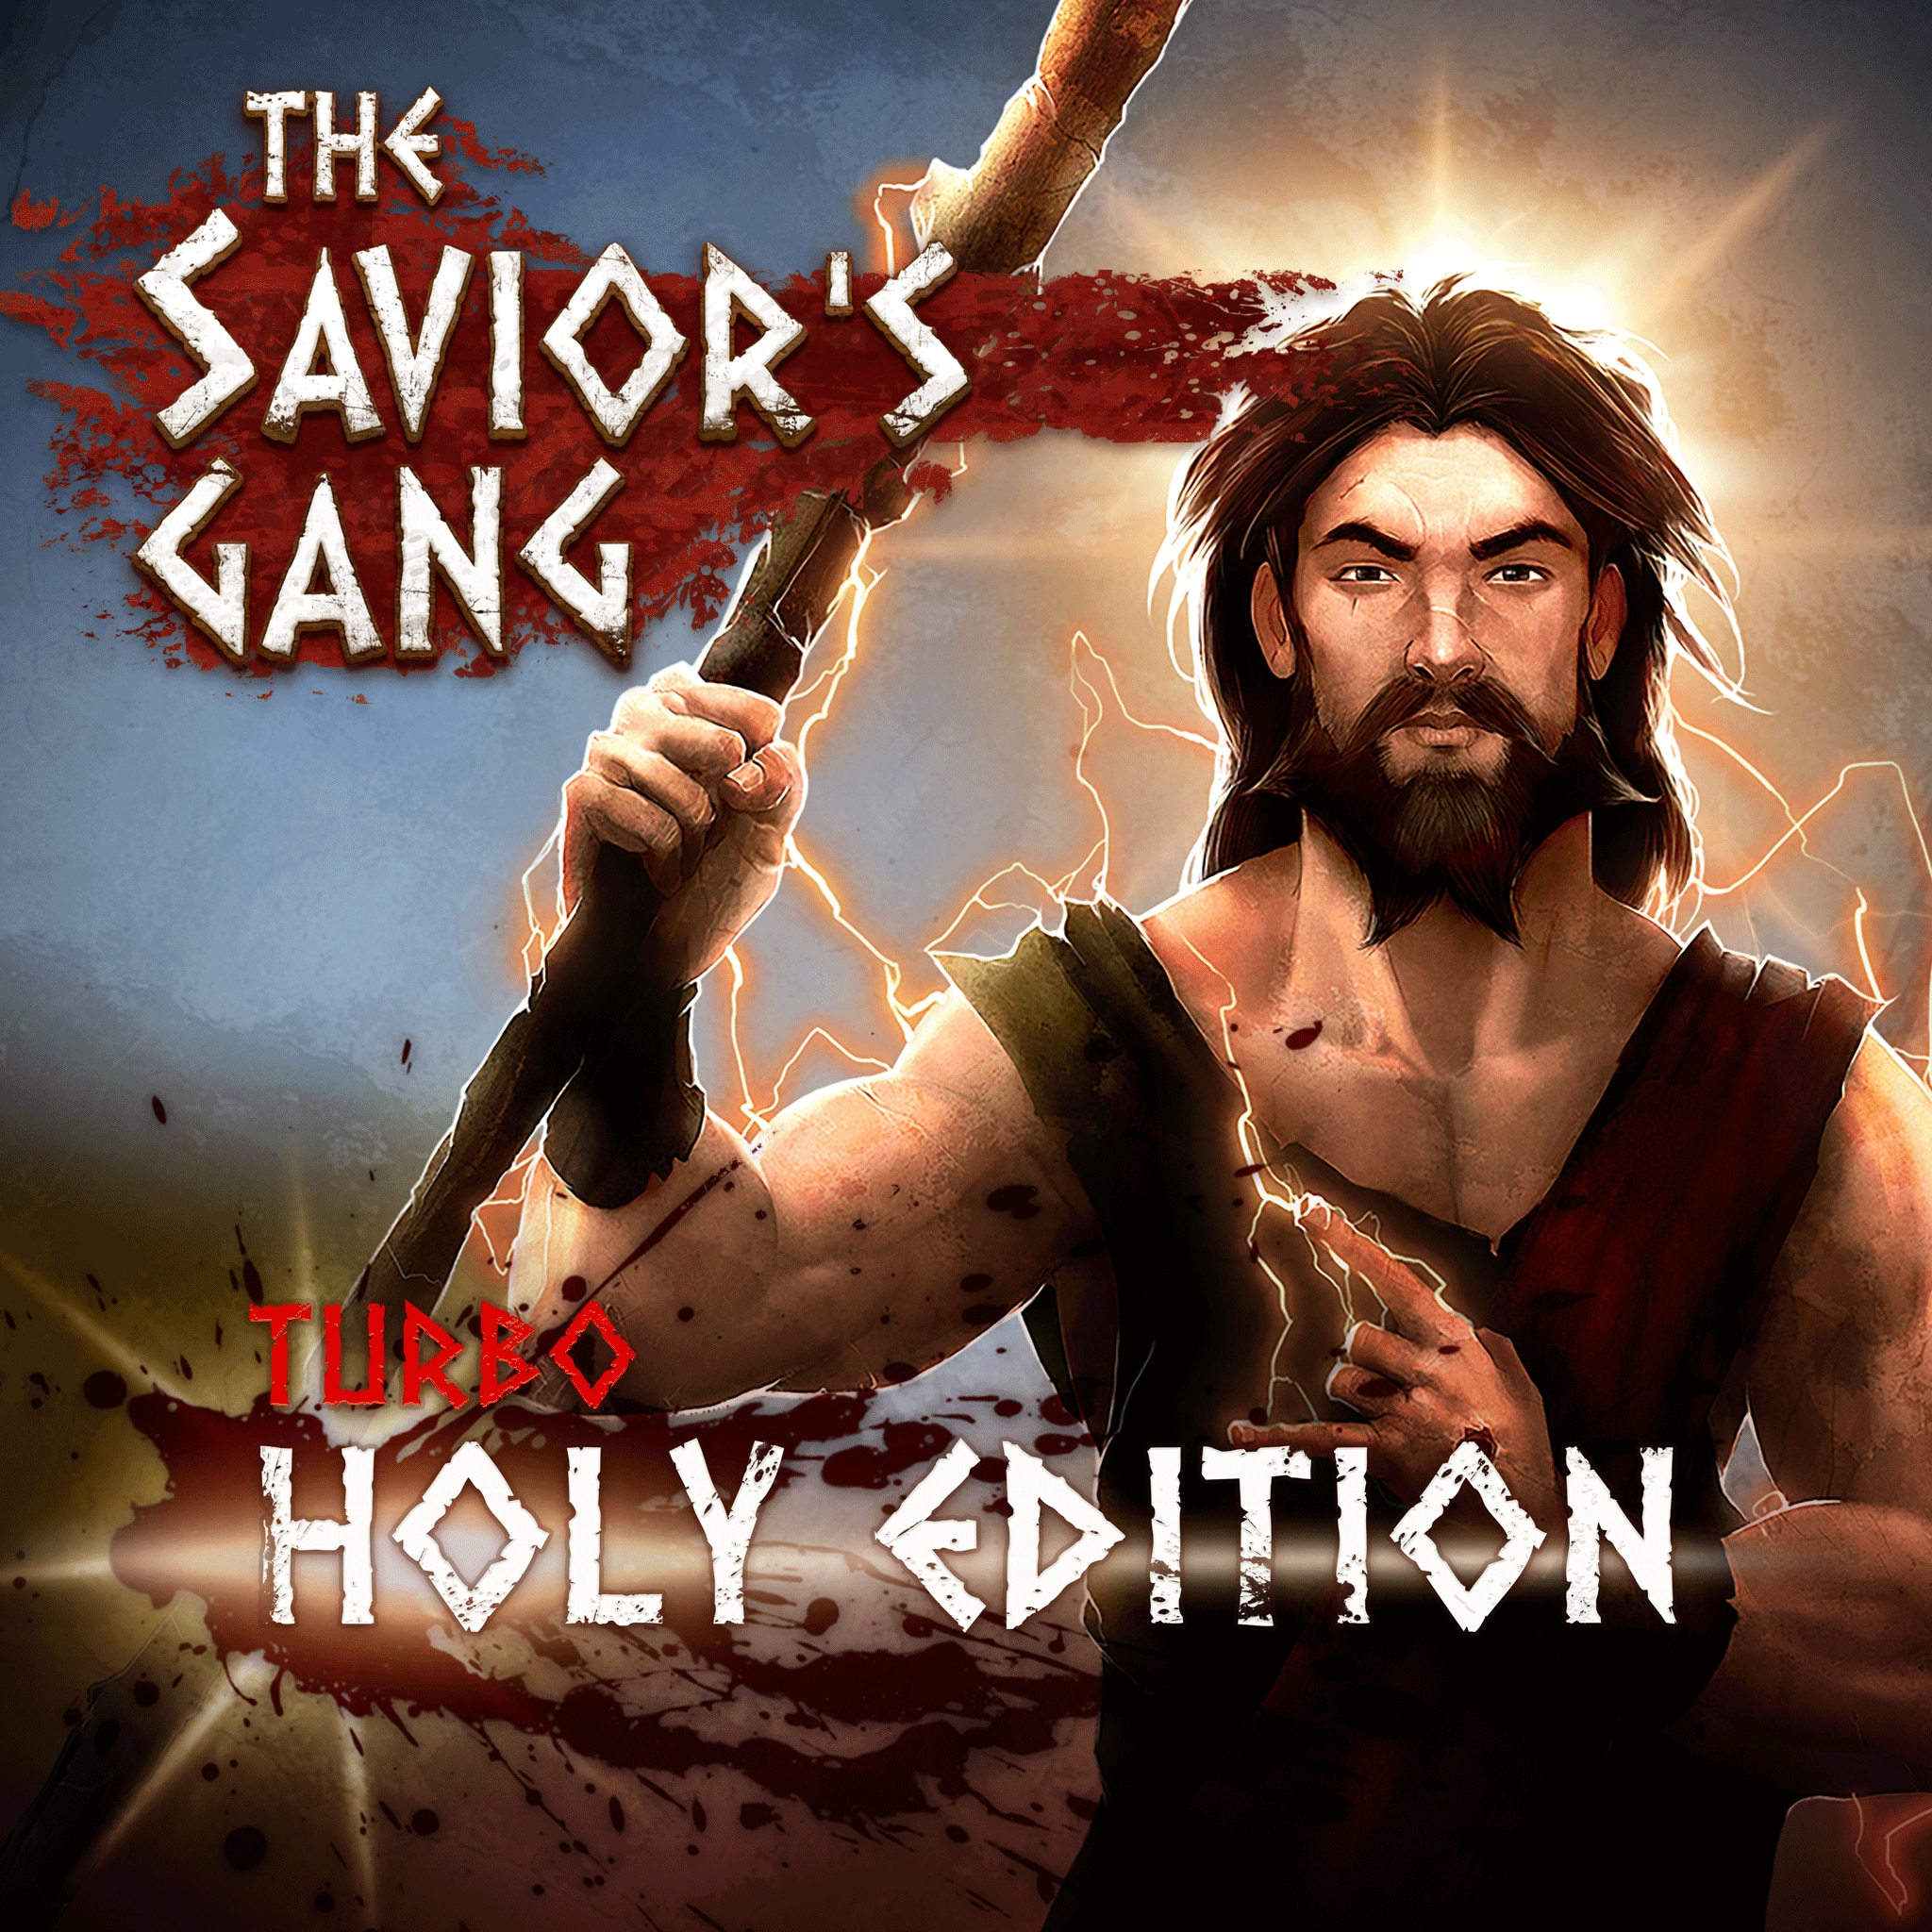 The Savior's Gang - Turbo Holy Edition